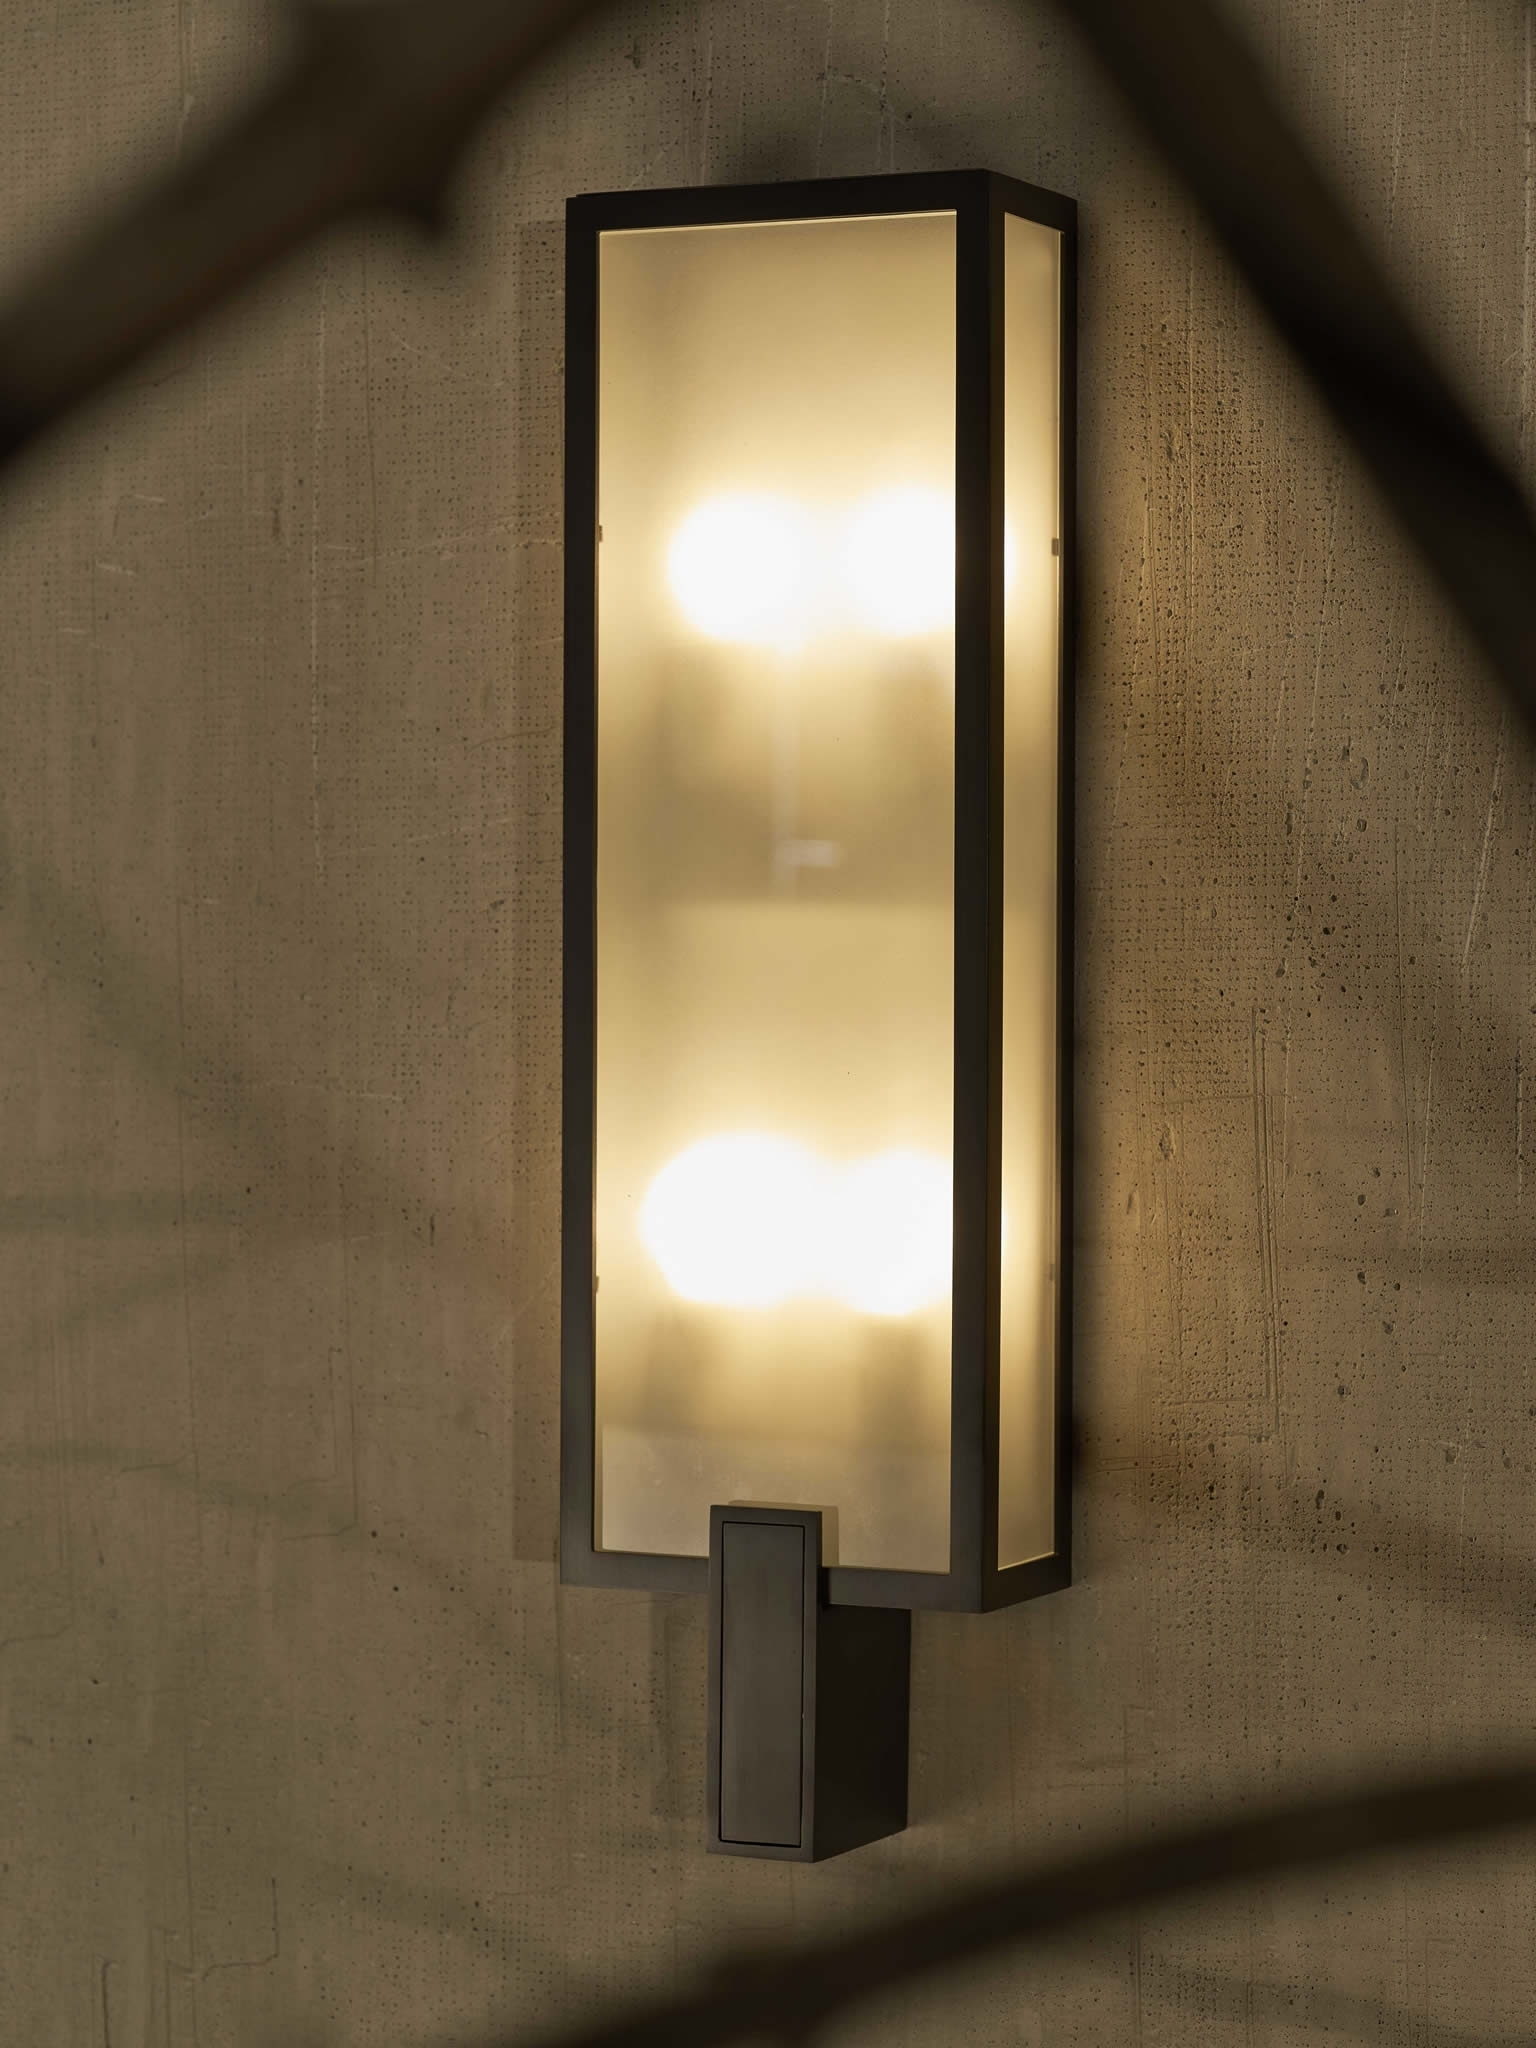 Outdoor Hanging Wall Lights With Regard To Well Known Outdoor : Metal Wall Sconces Candle Holders Wrought Iron Sconce (View 12 of 20)